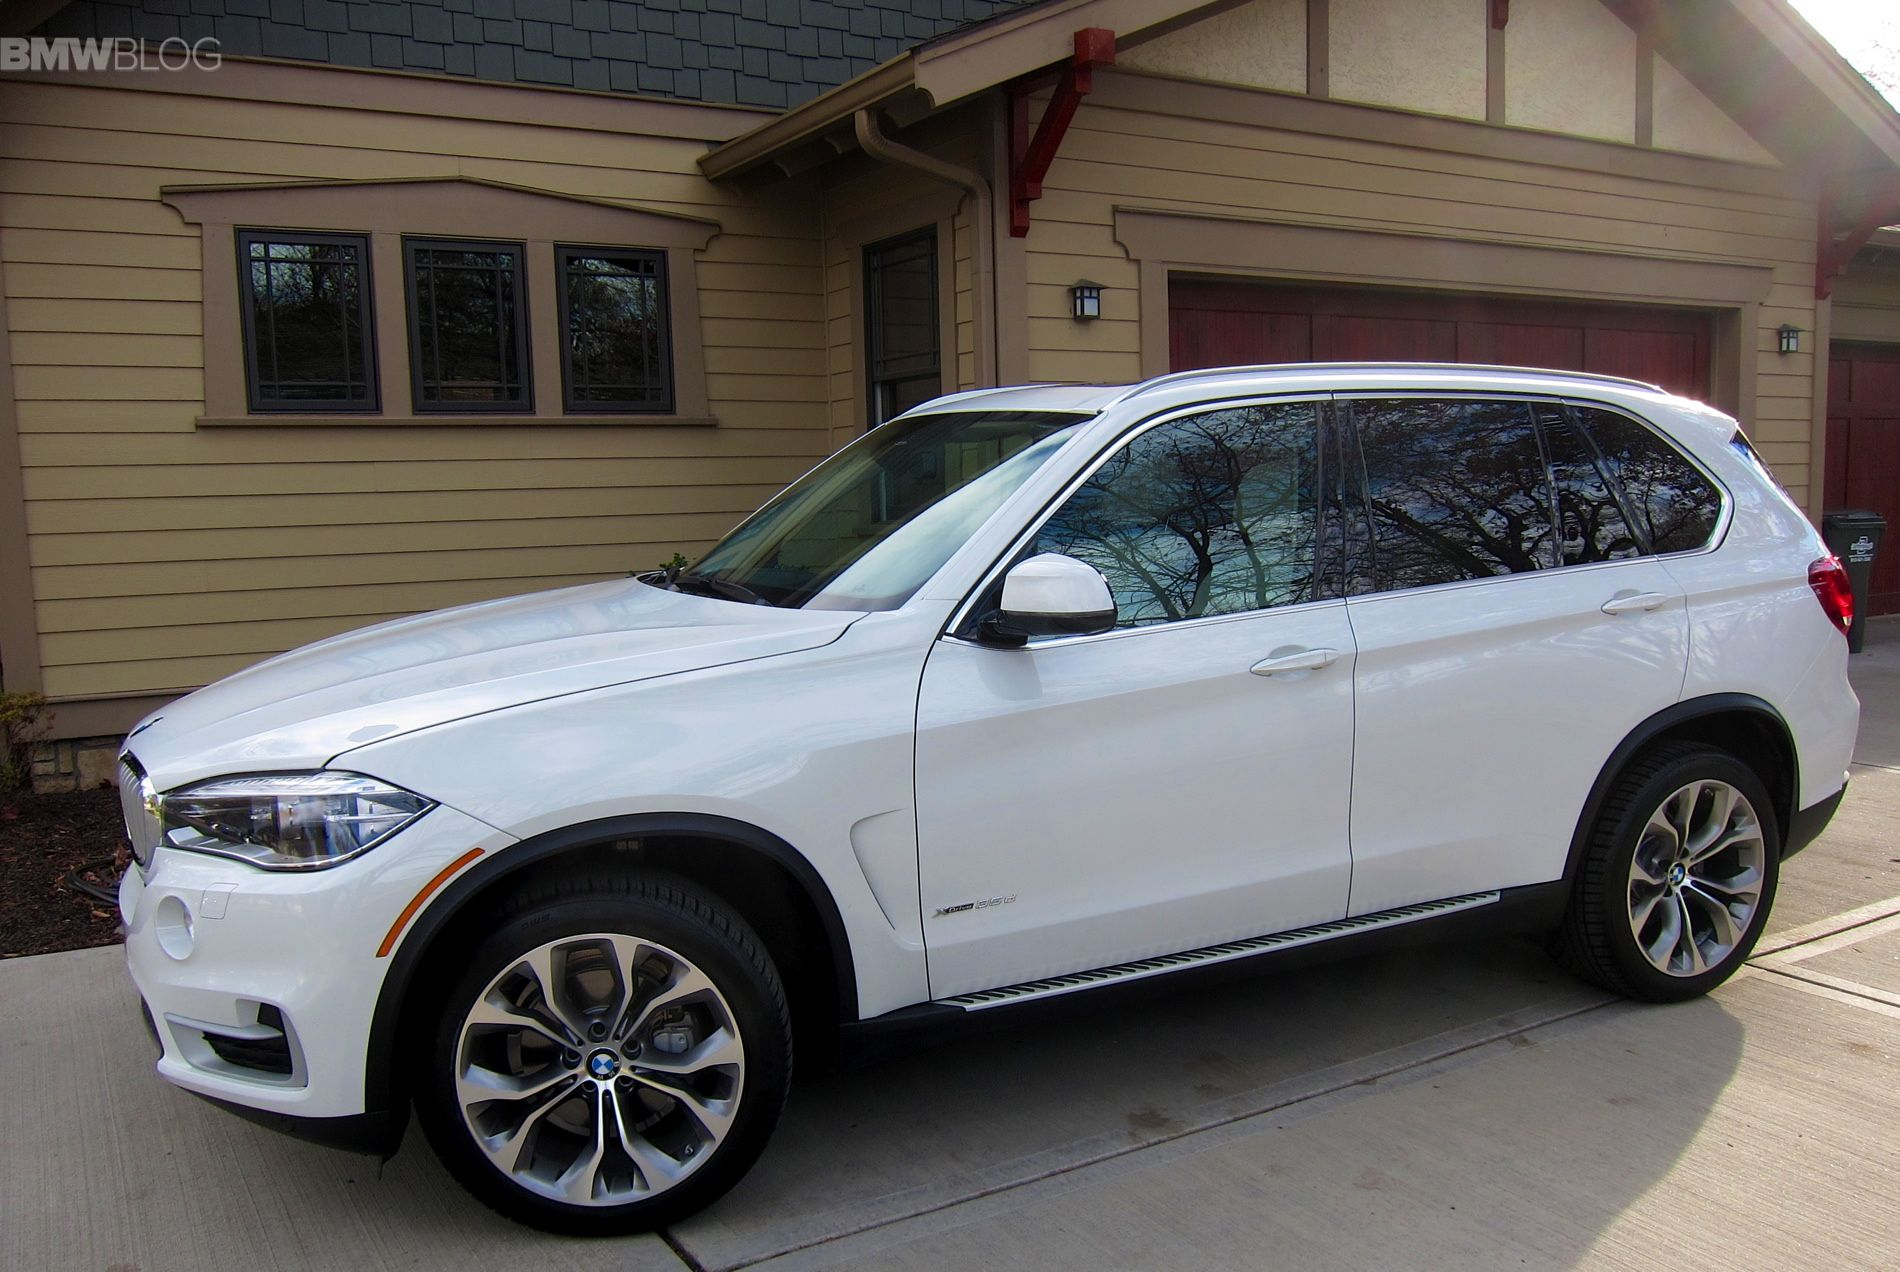 2016 bmw x5 xdrive35d undergoes minor technical updates delivers in december 2015 http www. Black Bedroom Furniture Sets. Home Design Ideas